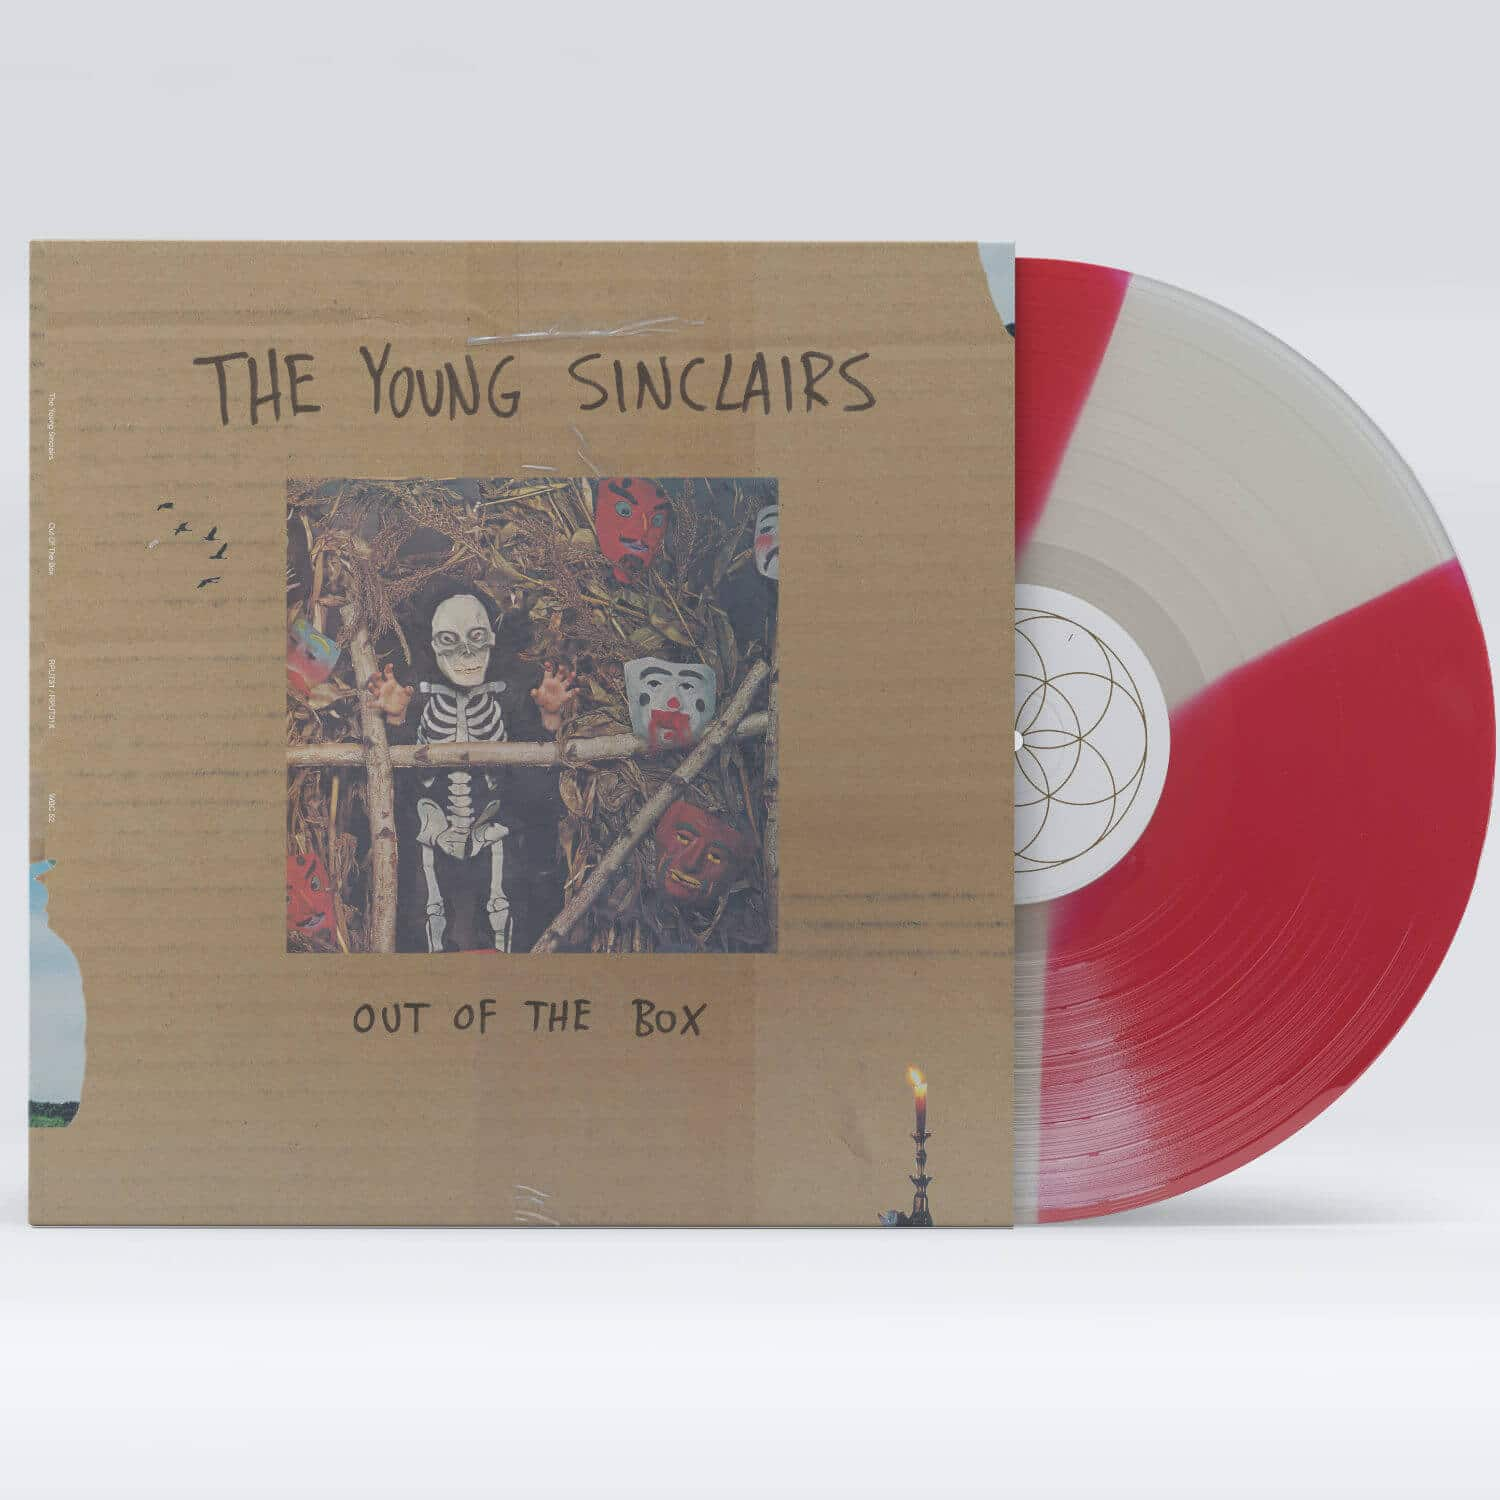 The Young Sinclairs - Wax Buyers Club - Mockup - Square